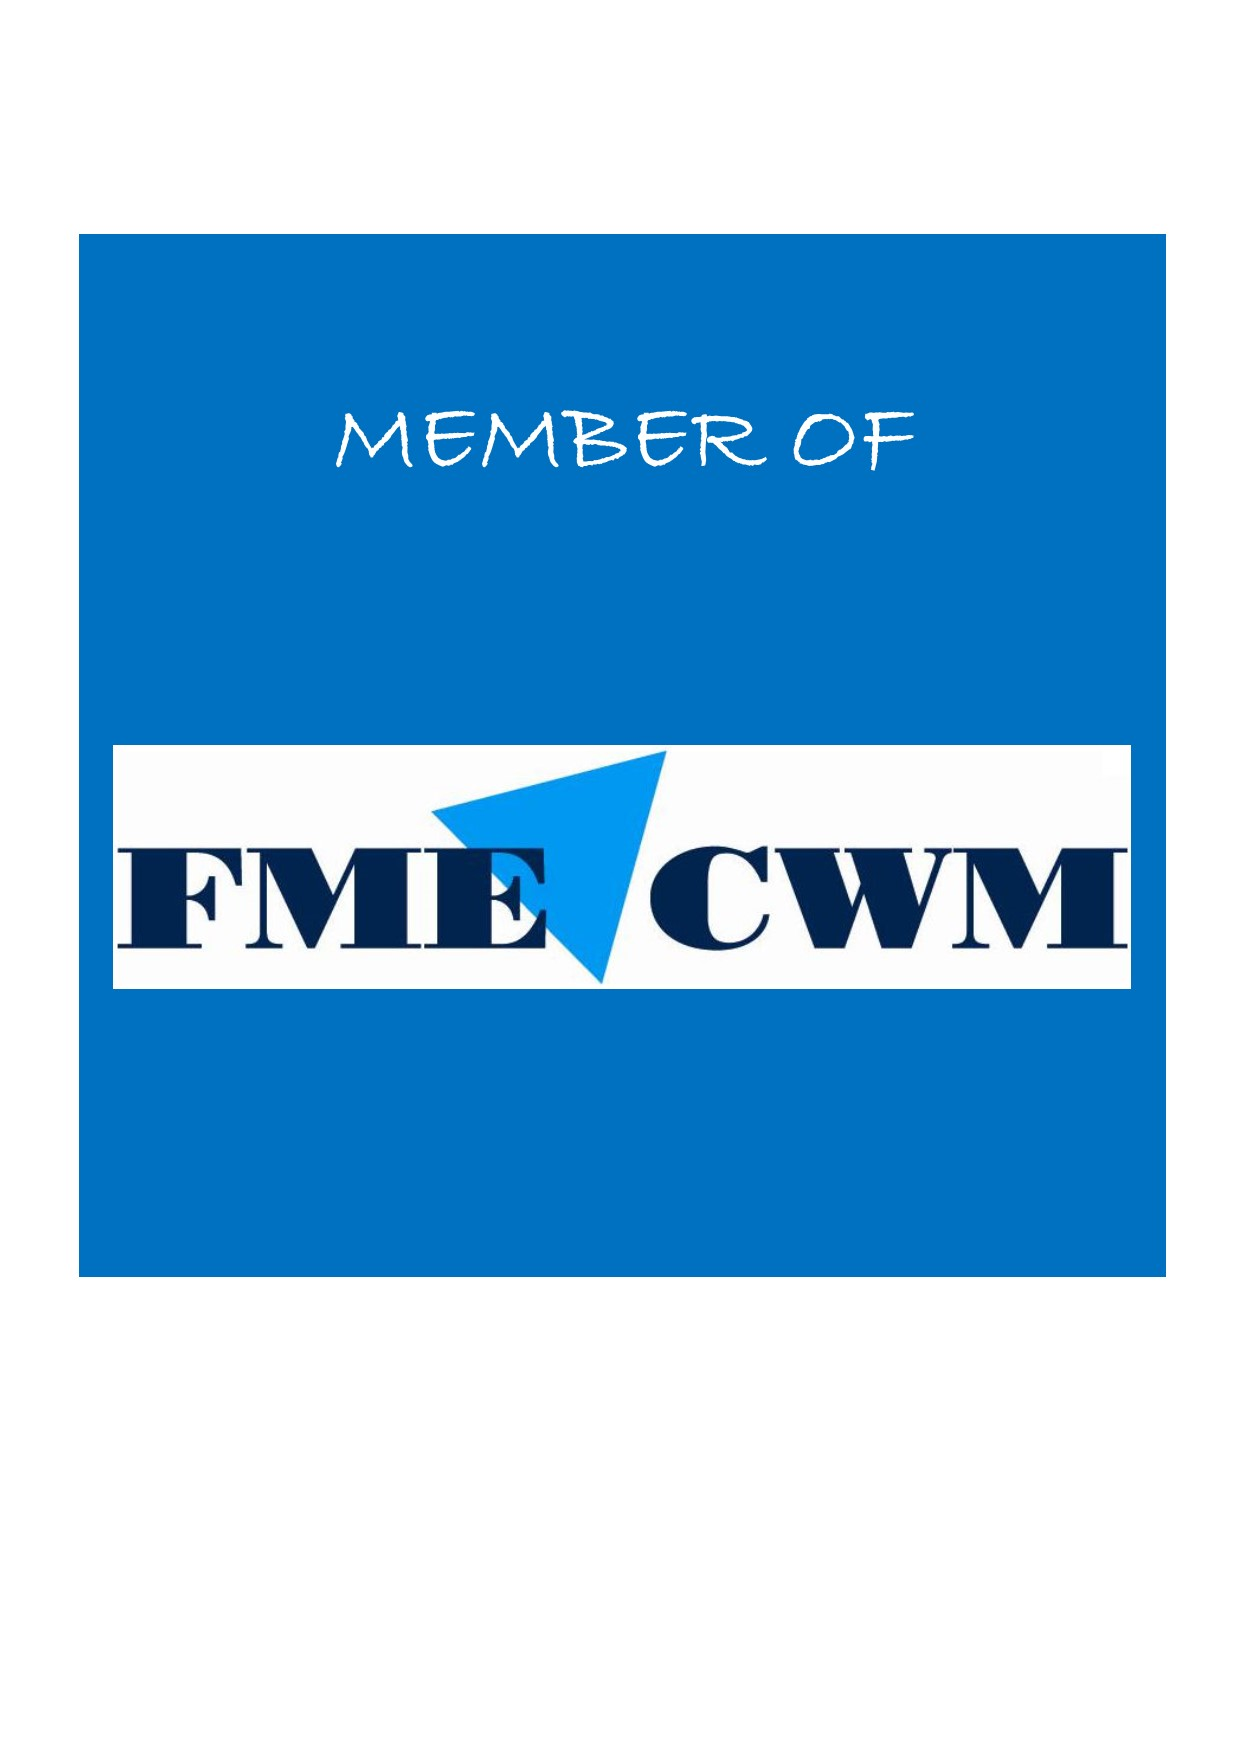 Bega is member of FME CWM branch organisation